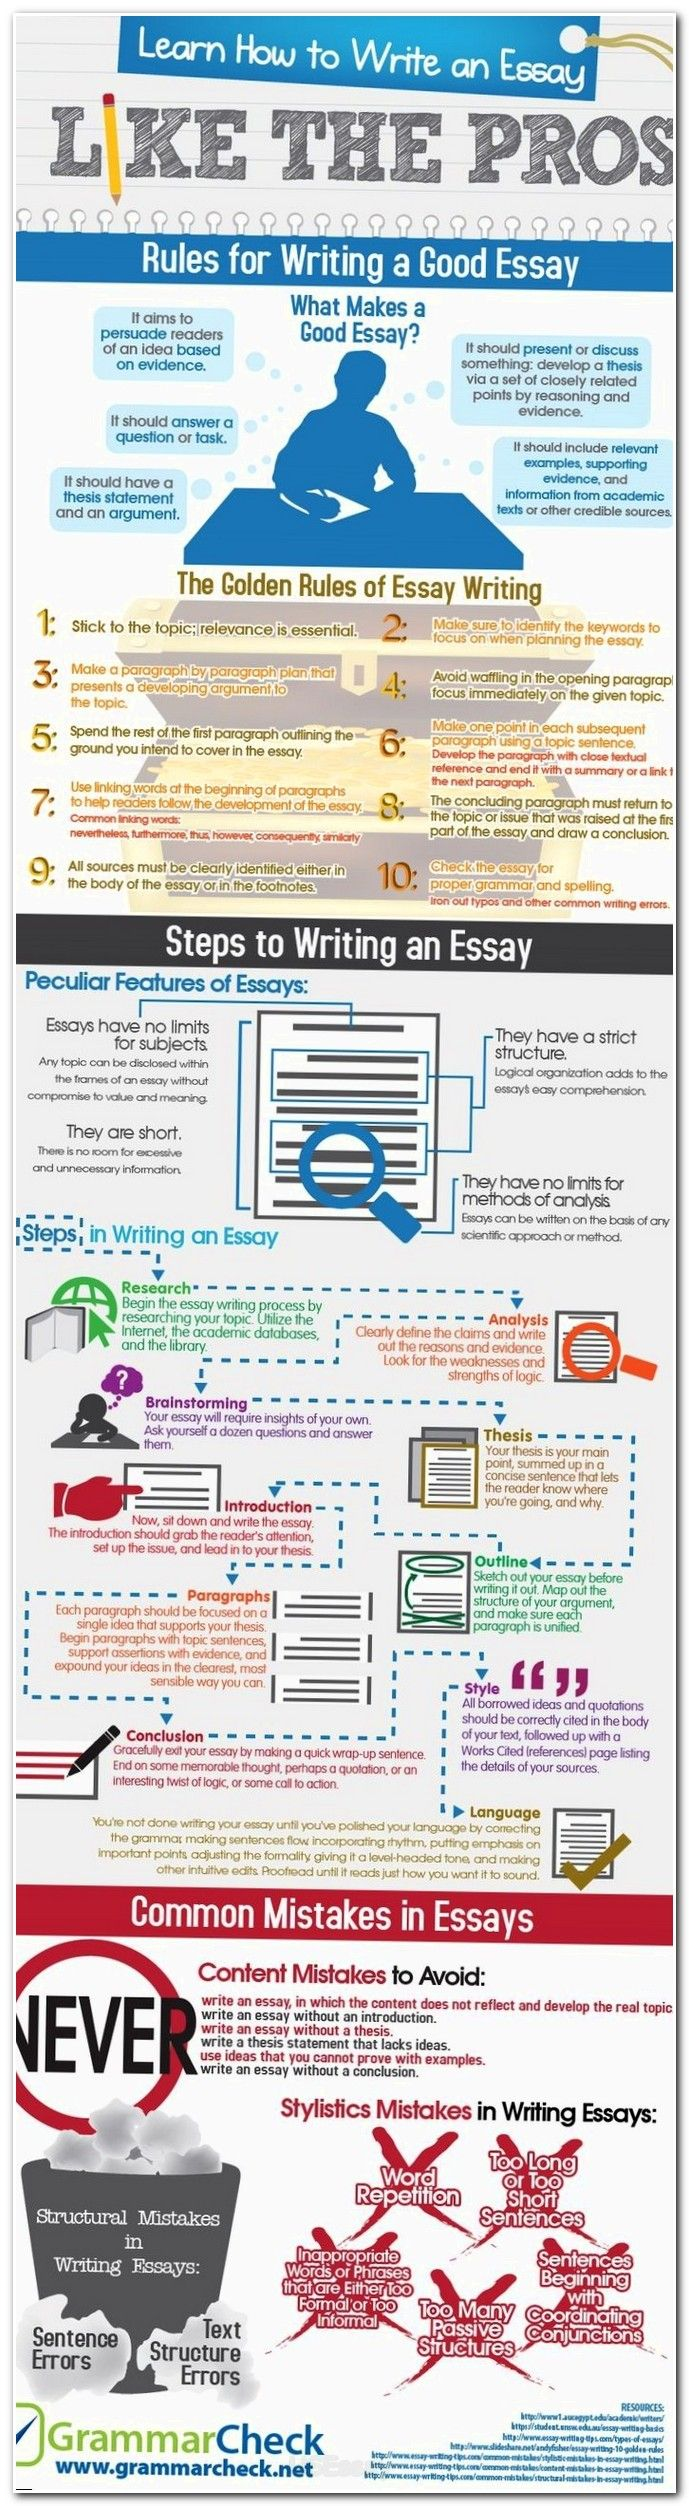 best stanford mba ideas stanford application   essay essaywriting songs to write essays about term paper topics for english